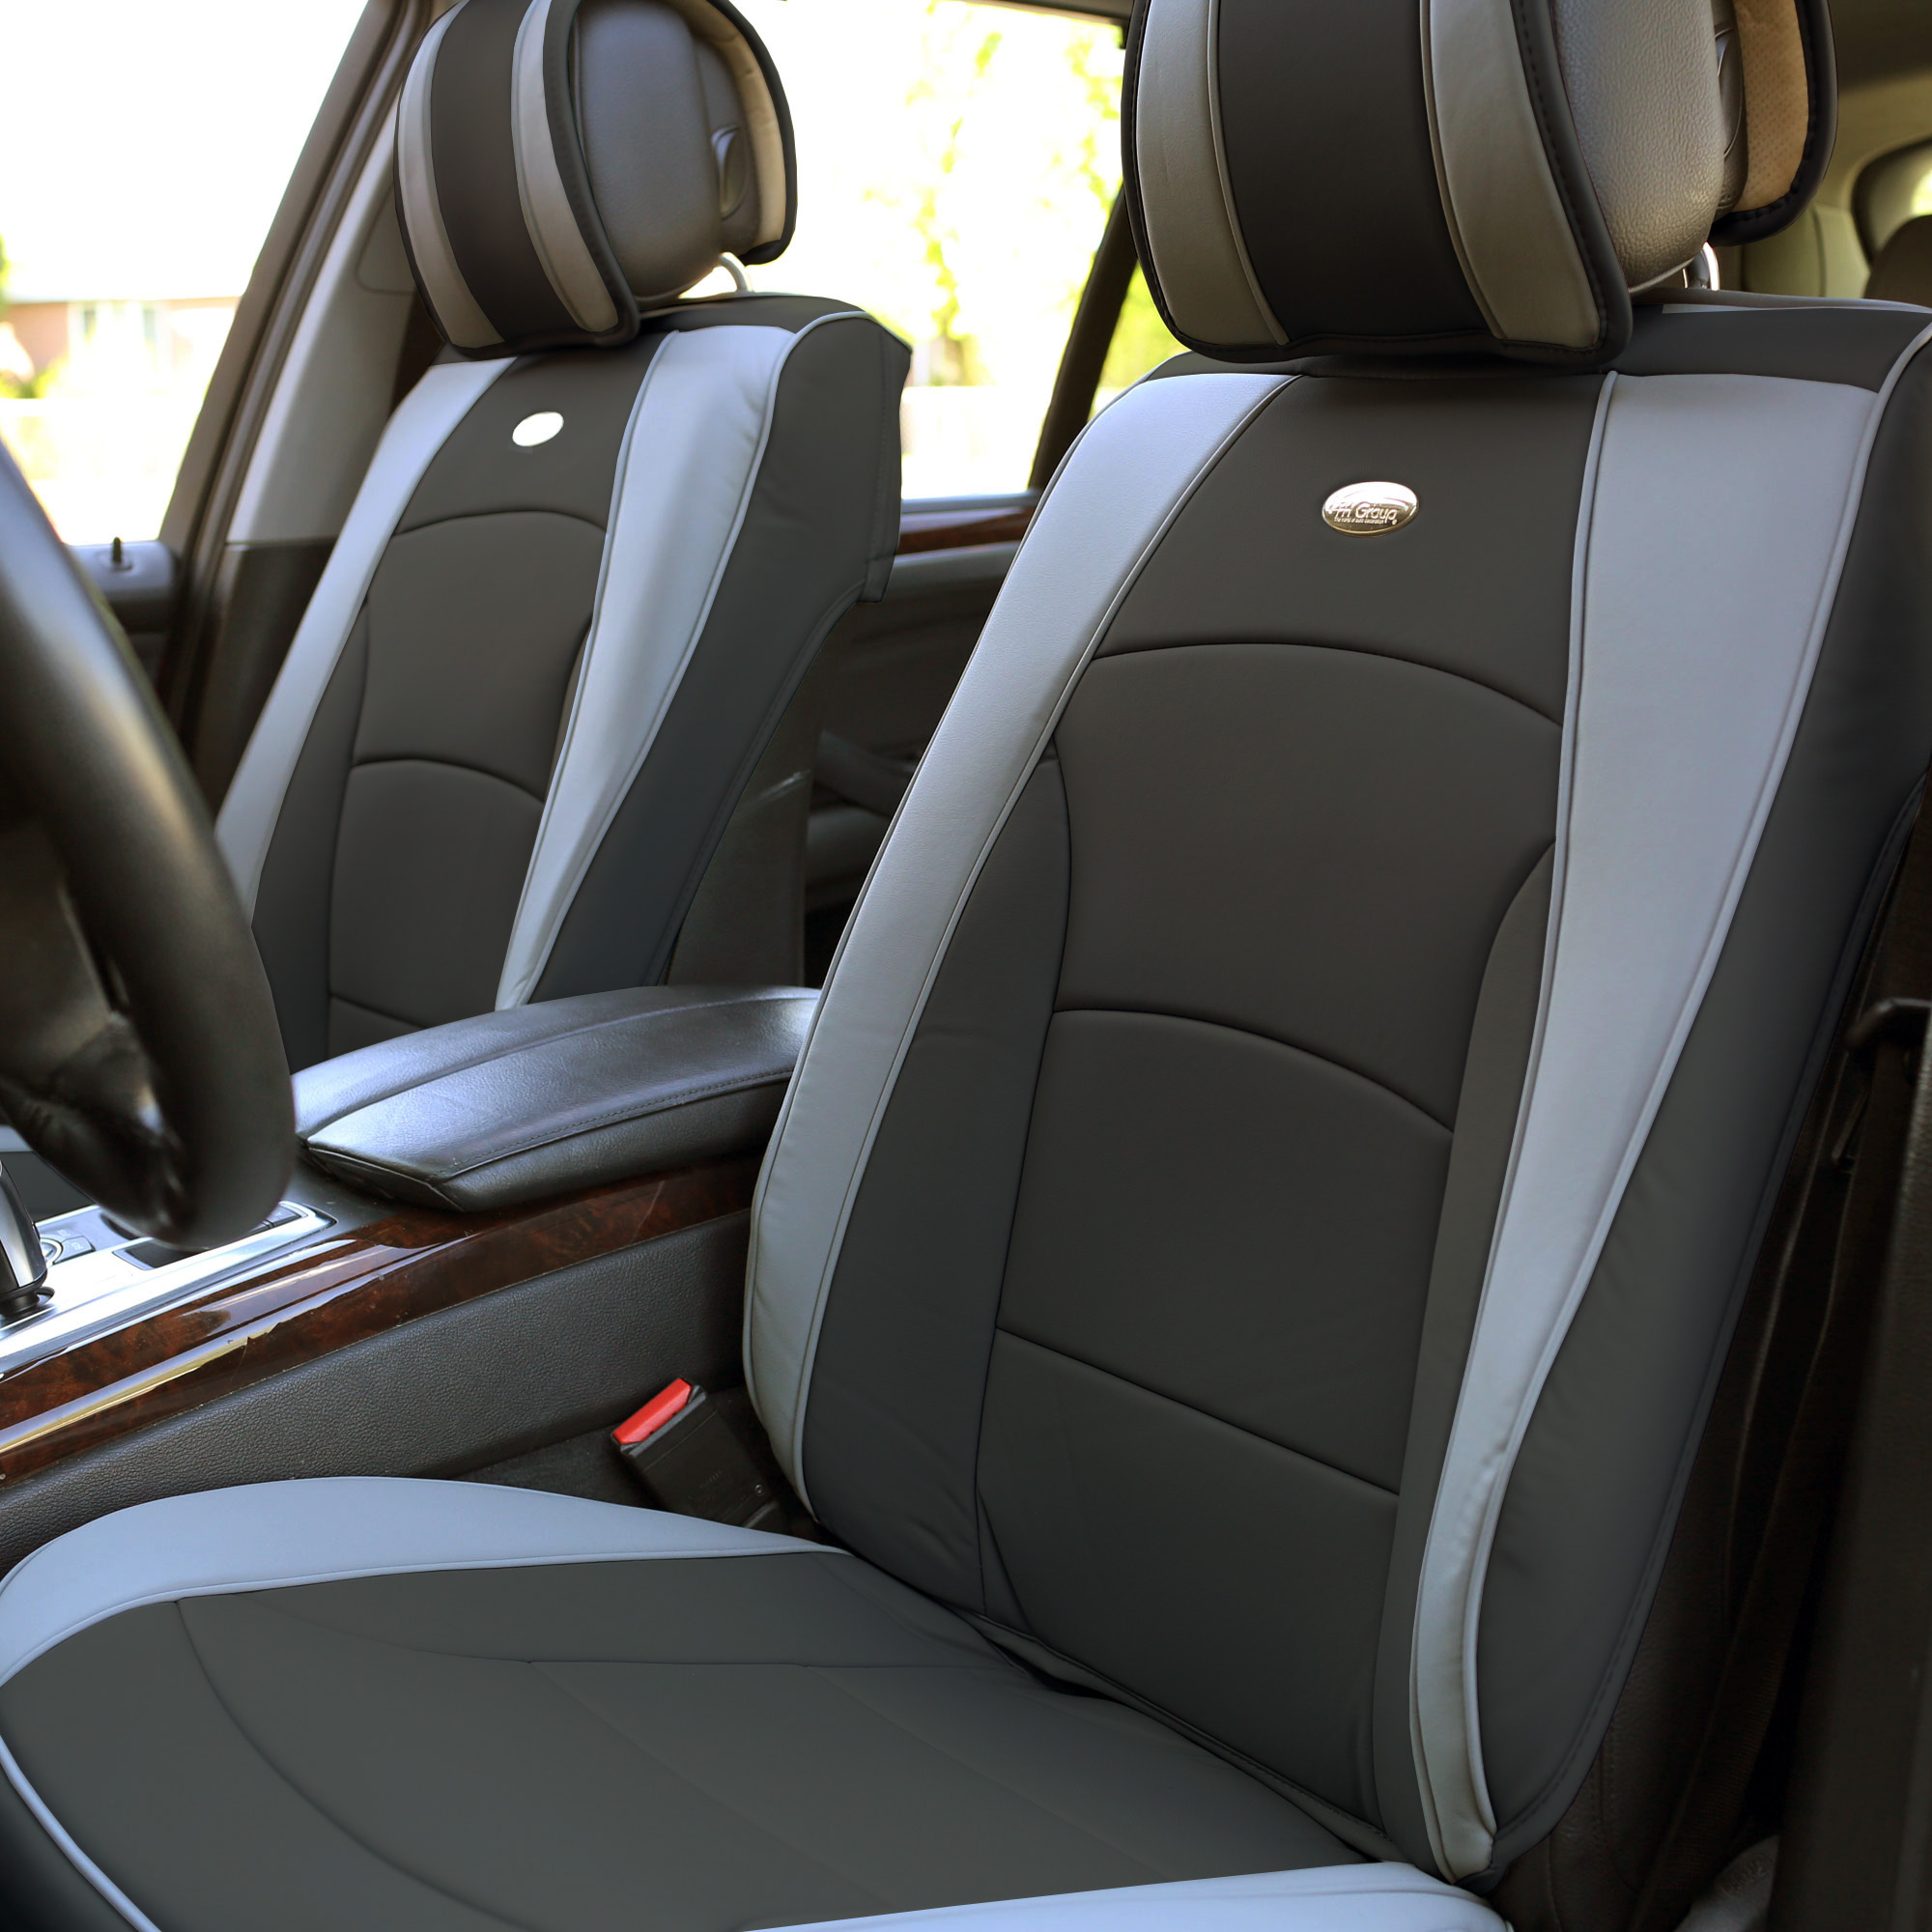 Luxury-Leather-Seat-Cushion-Covers-Front-Bucket-Pair-11-Color-Options thumbnail 33